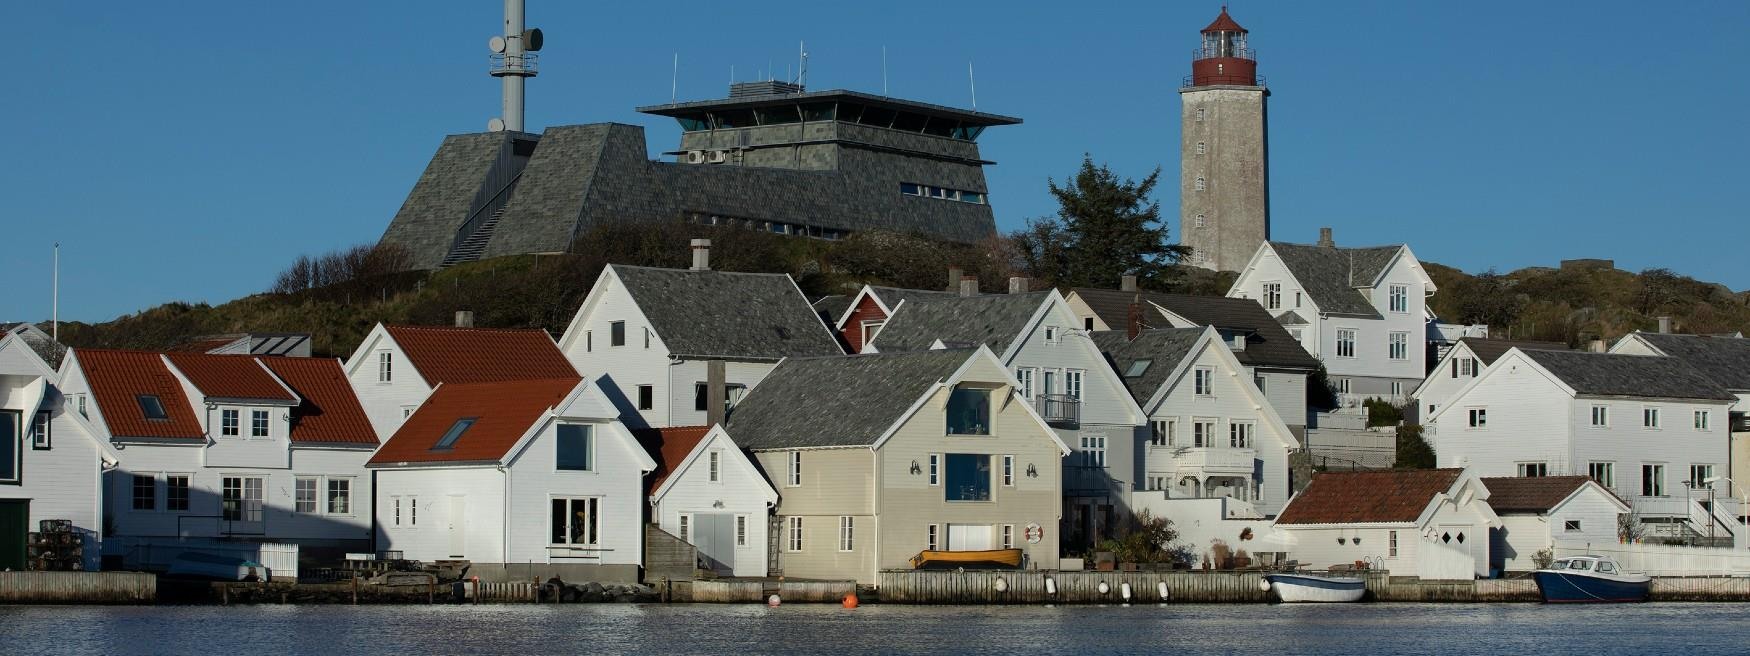 The view from Grøningen guest harbour at Kvitsøy